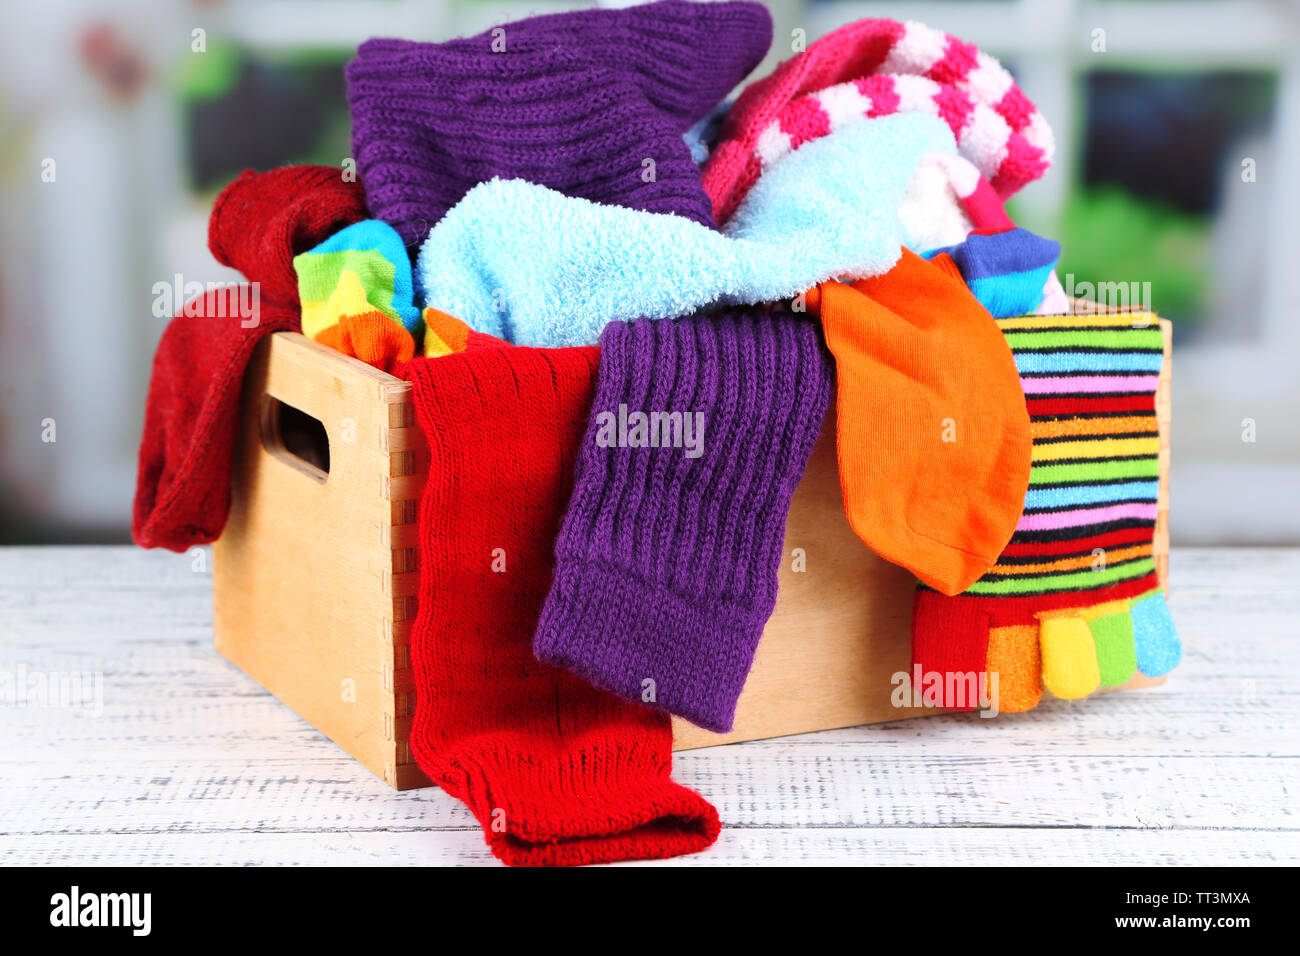 Multicoloured socks in a box on a wooden table in front of the window - Stock Image